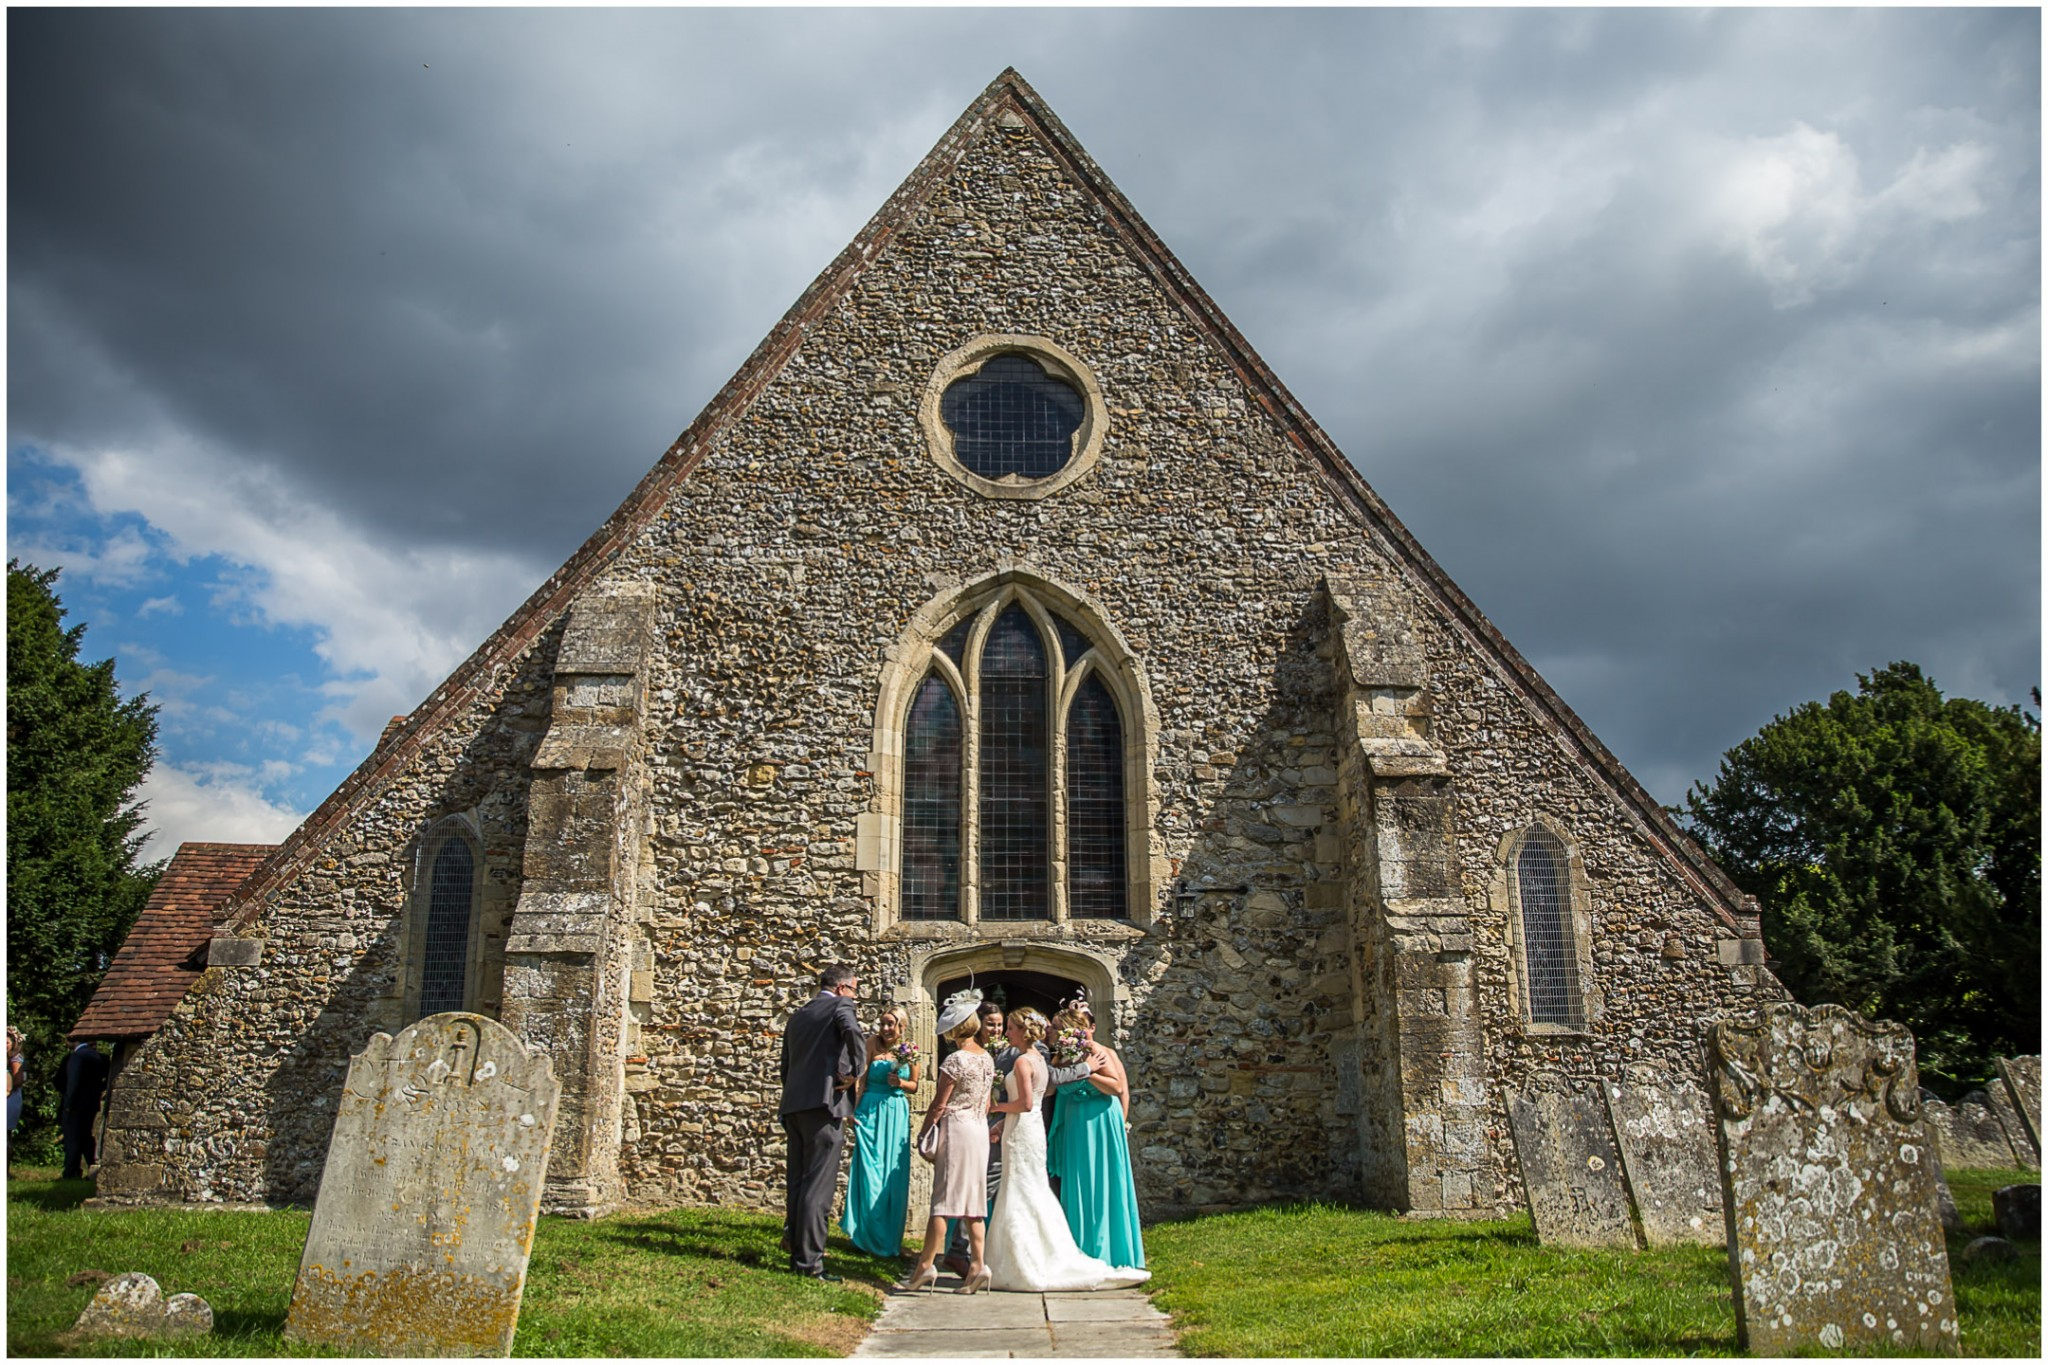 St Thomas a Becket Church Wedding Outside after the wedding ceremony